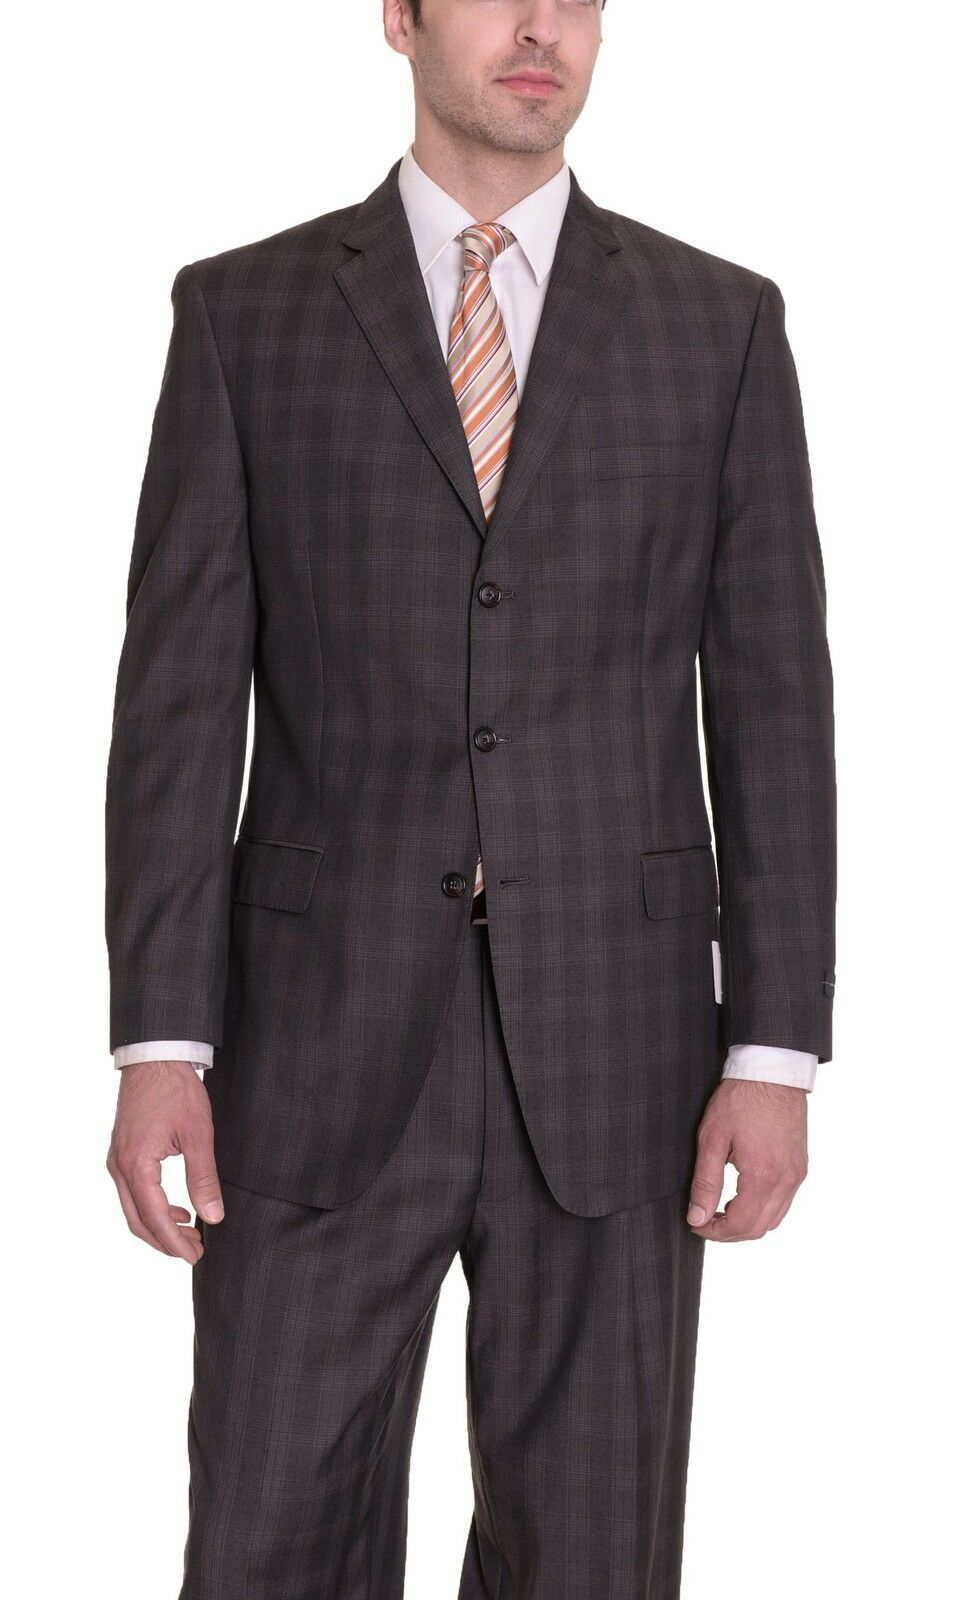 b7b4944653 John Regular Fit Brown Plaid Three Button Suit Sean psqmbt9130-Suits    Tailoring